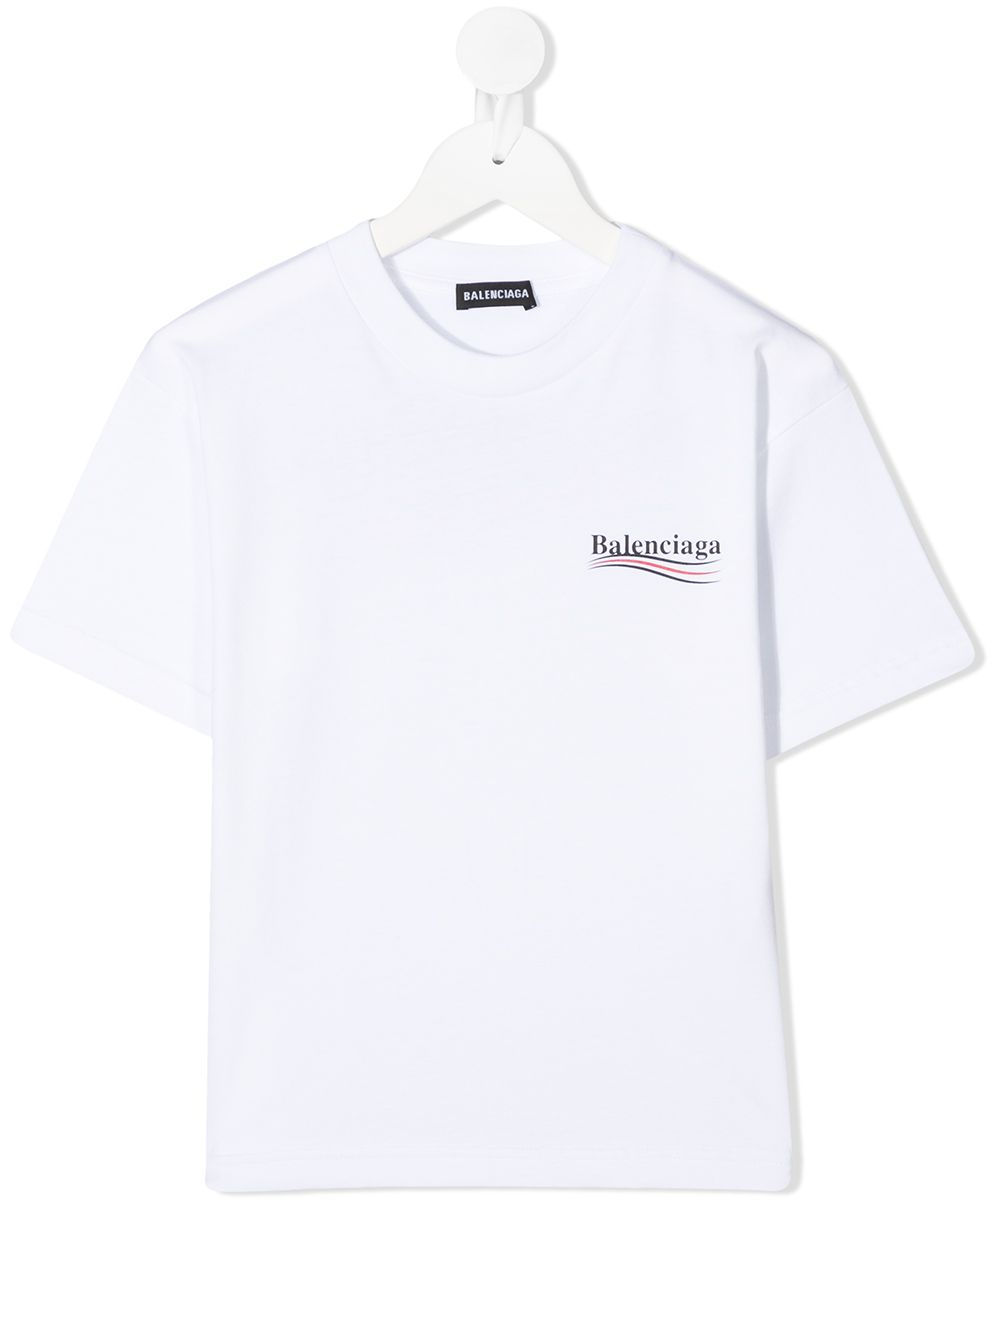 Unisex Kid White T-Shirt With Political